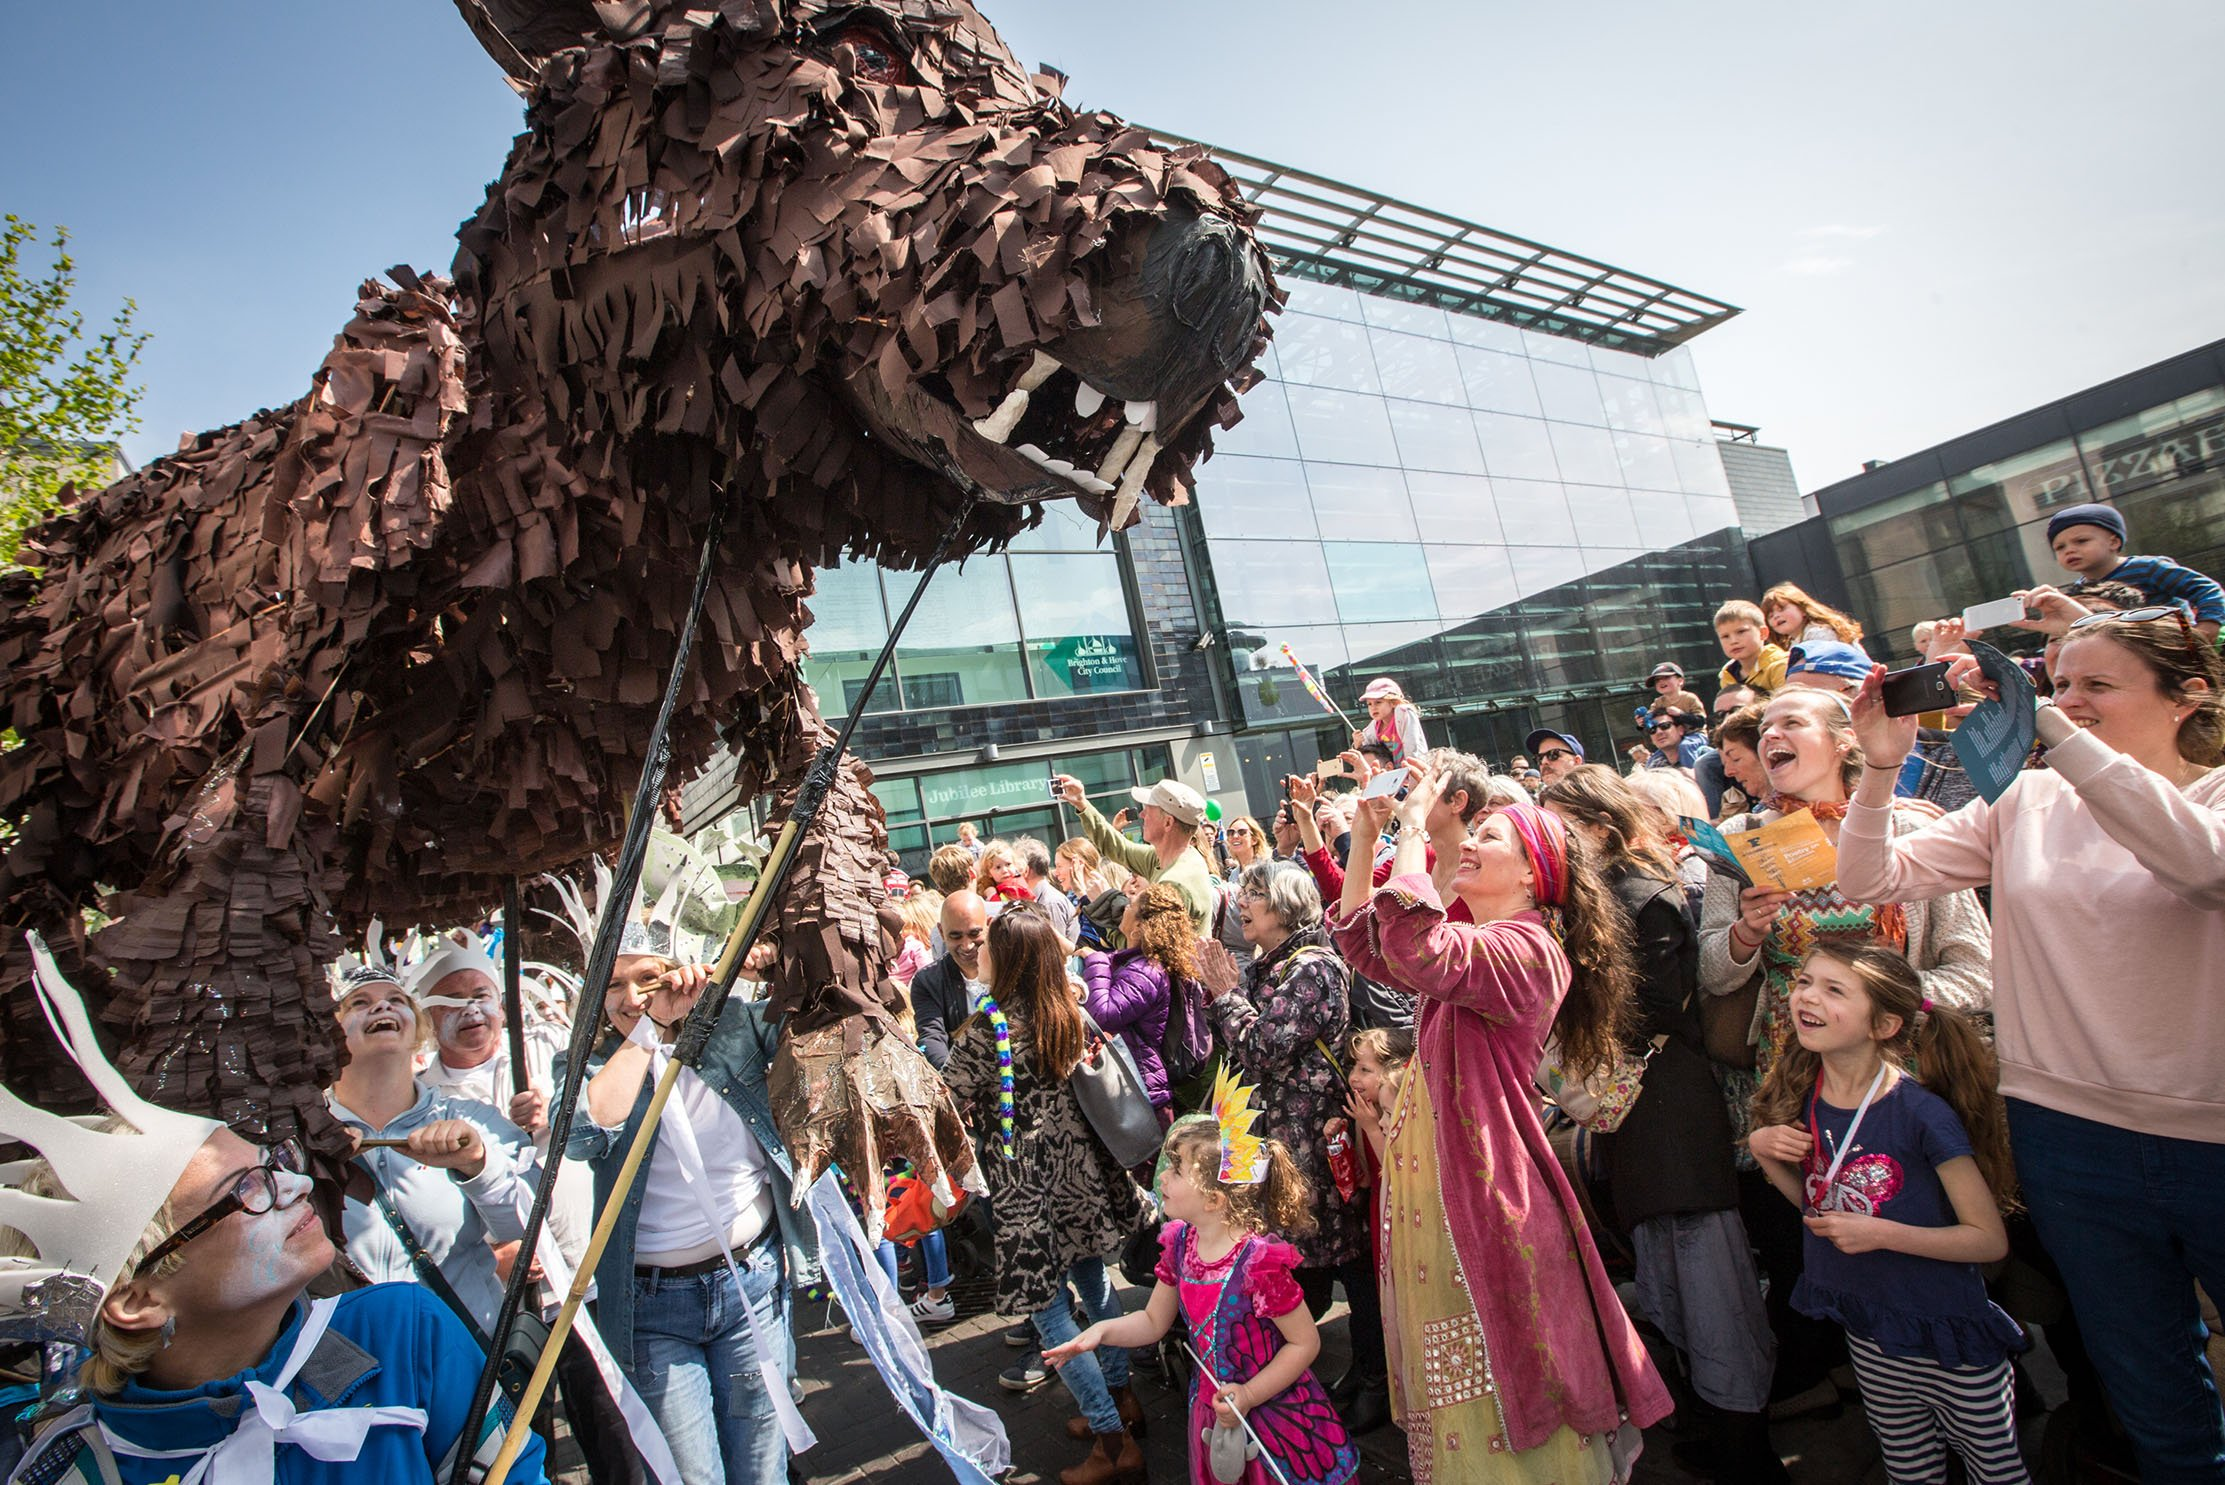 Brighton Festival has announced the theme for it's annual Children's Parade